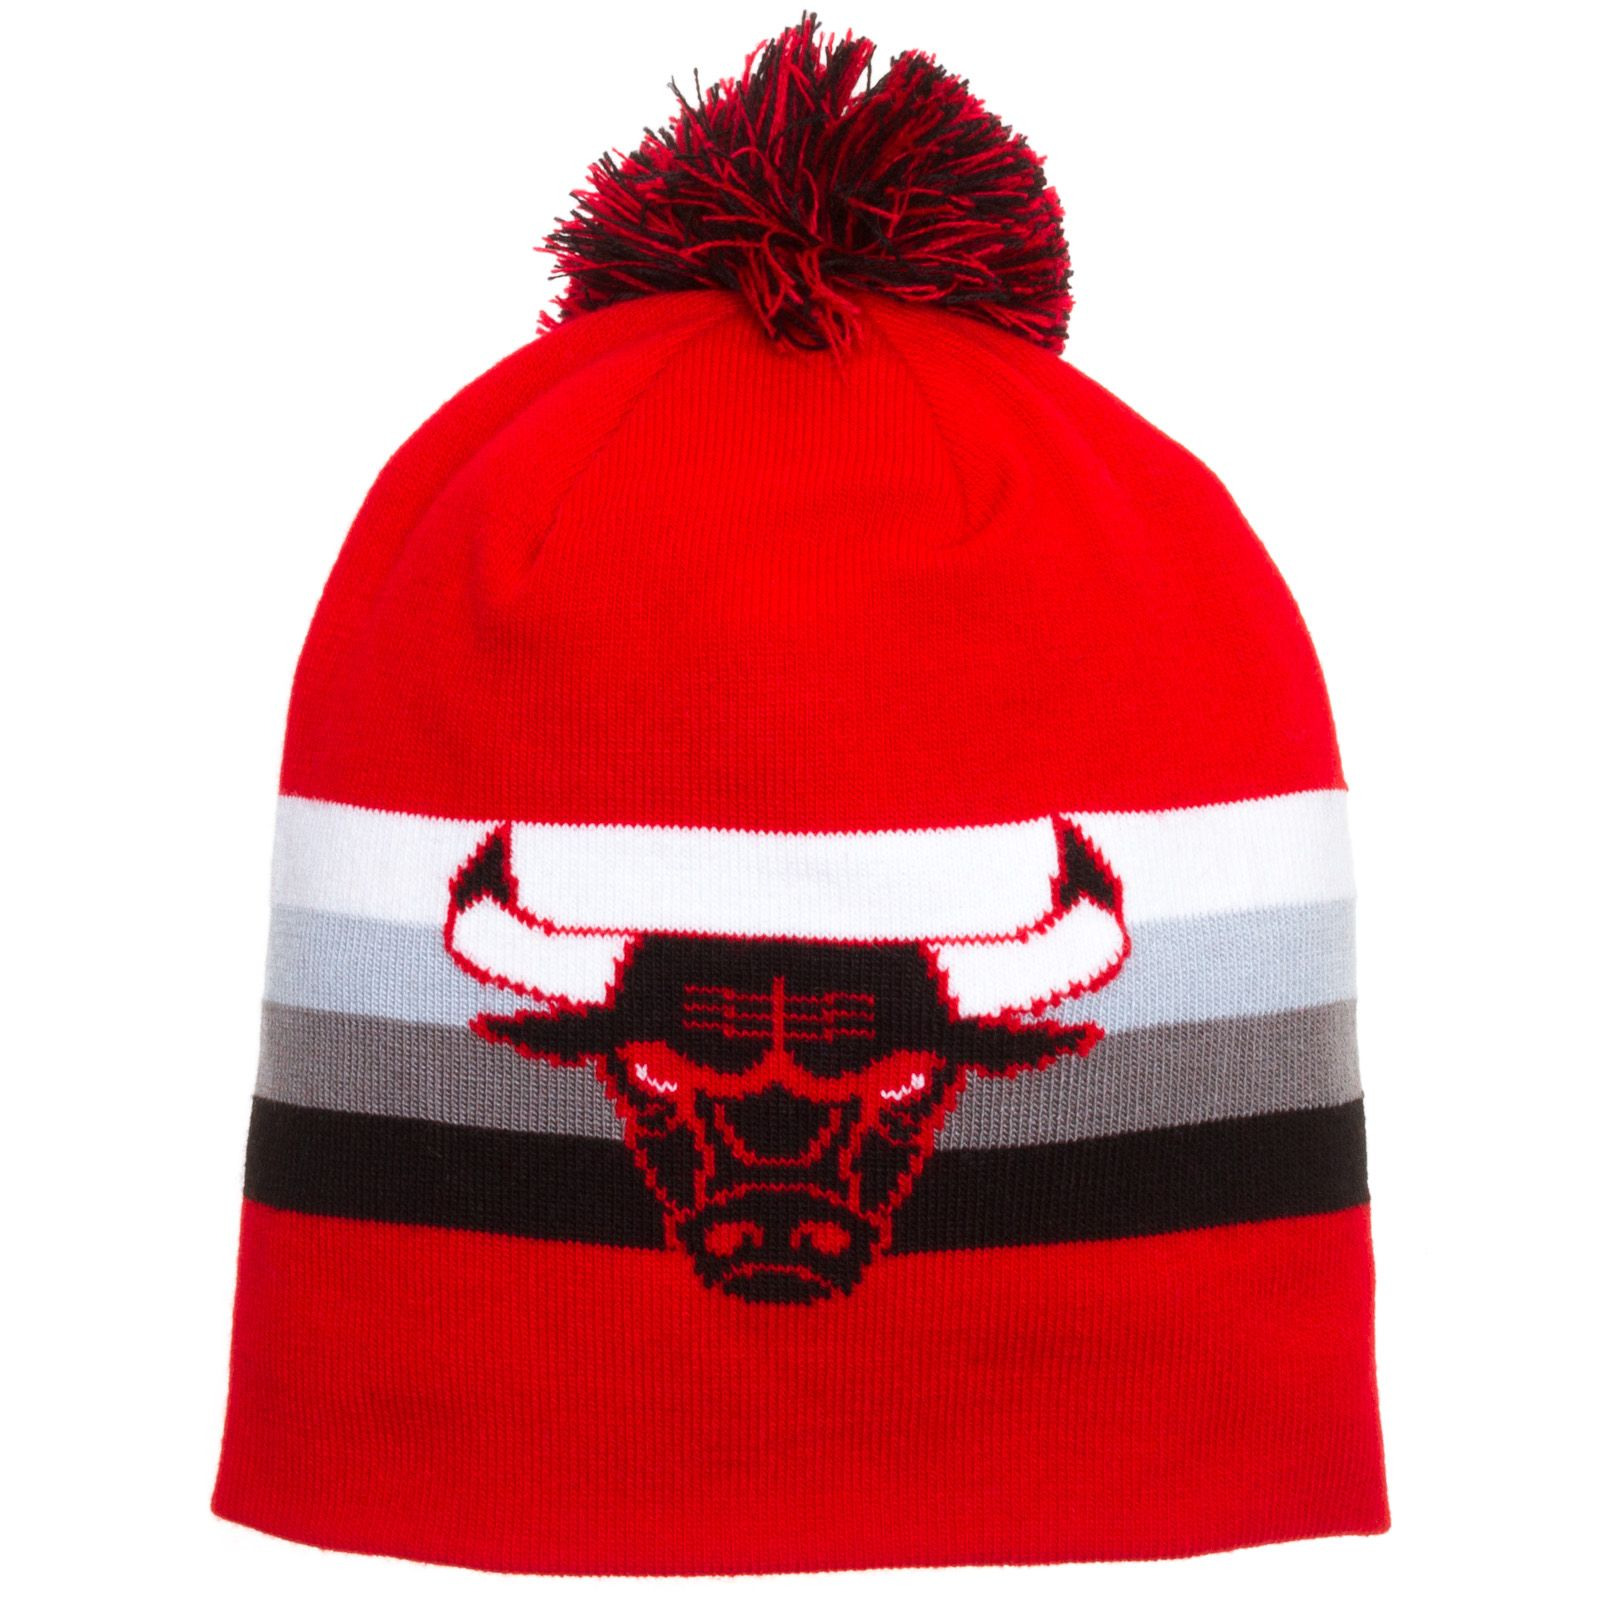 Chicago bulls red boost long knit hat by mitchell ness